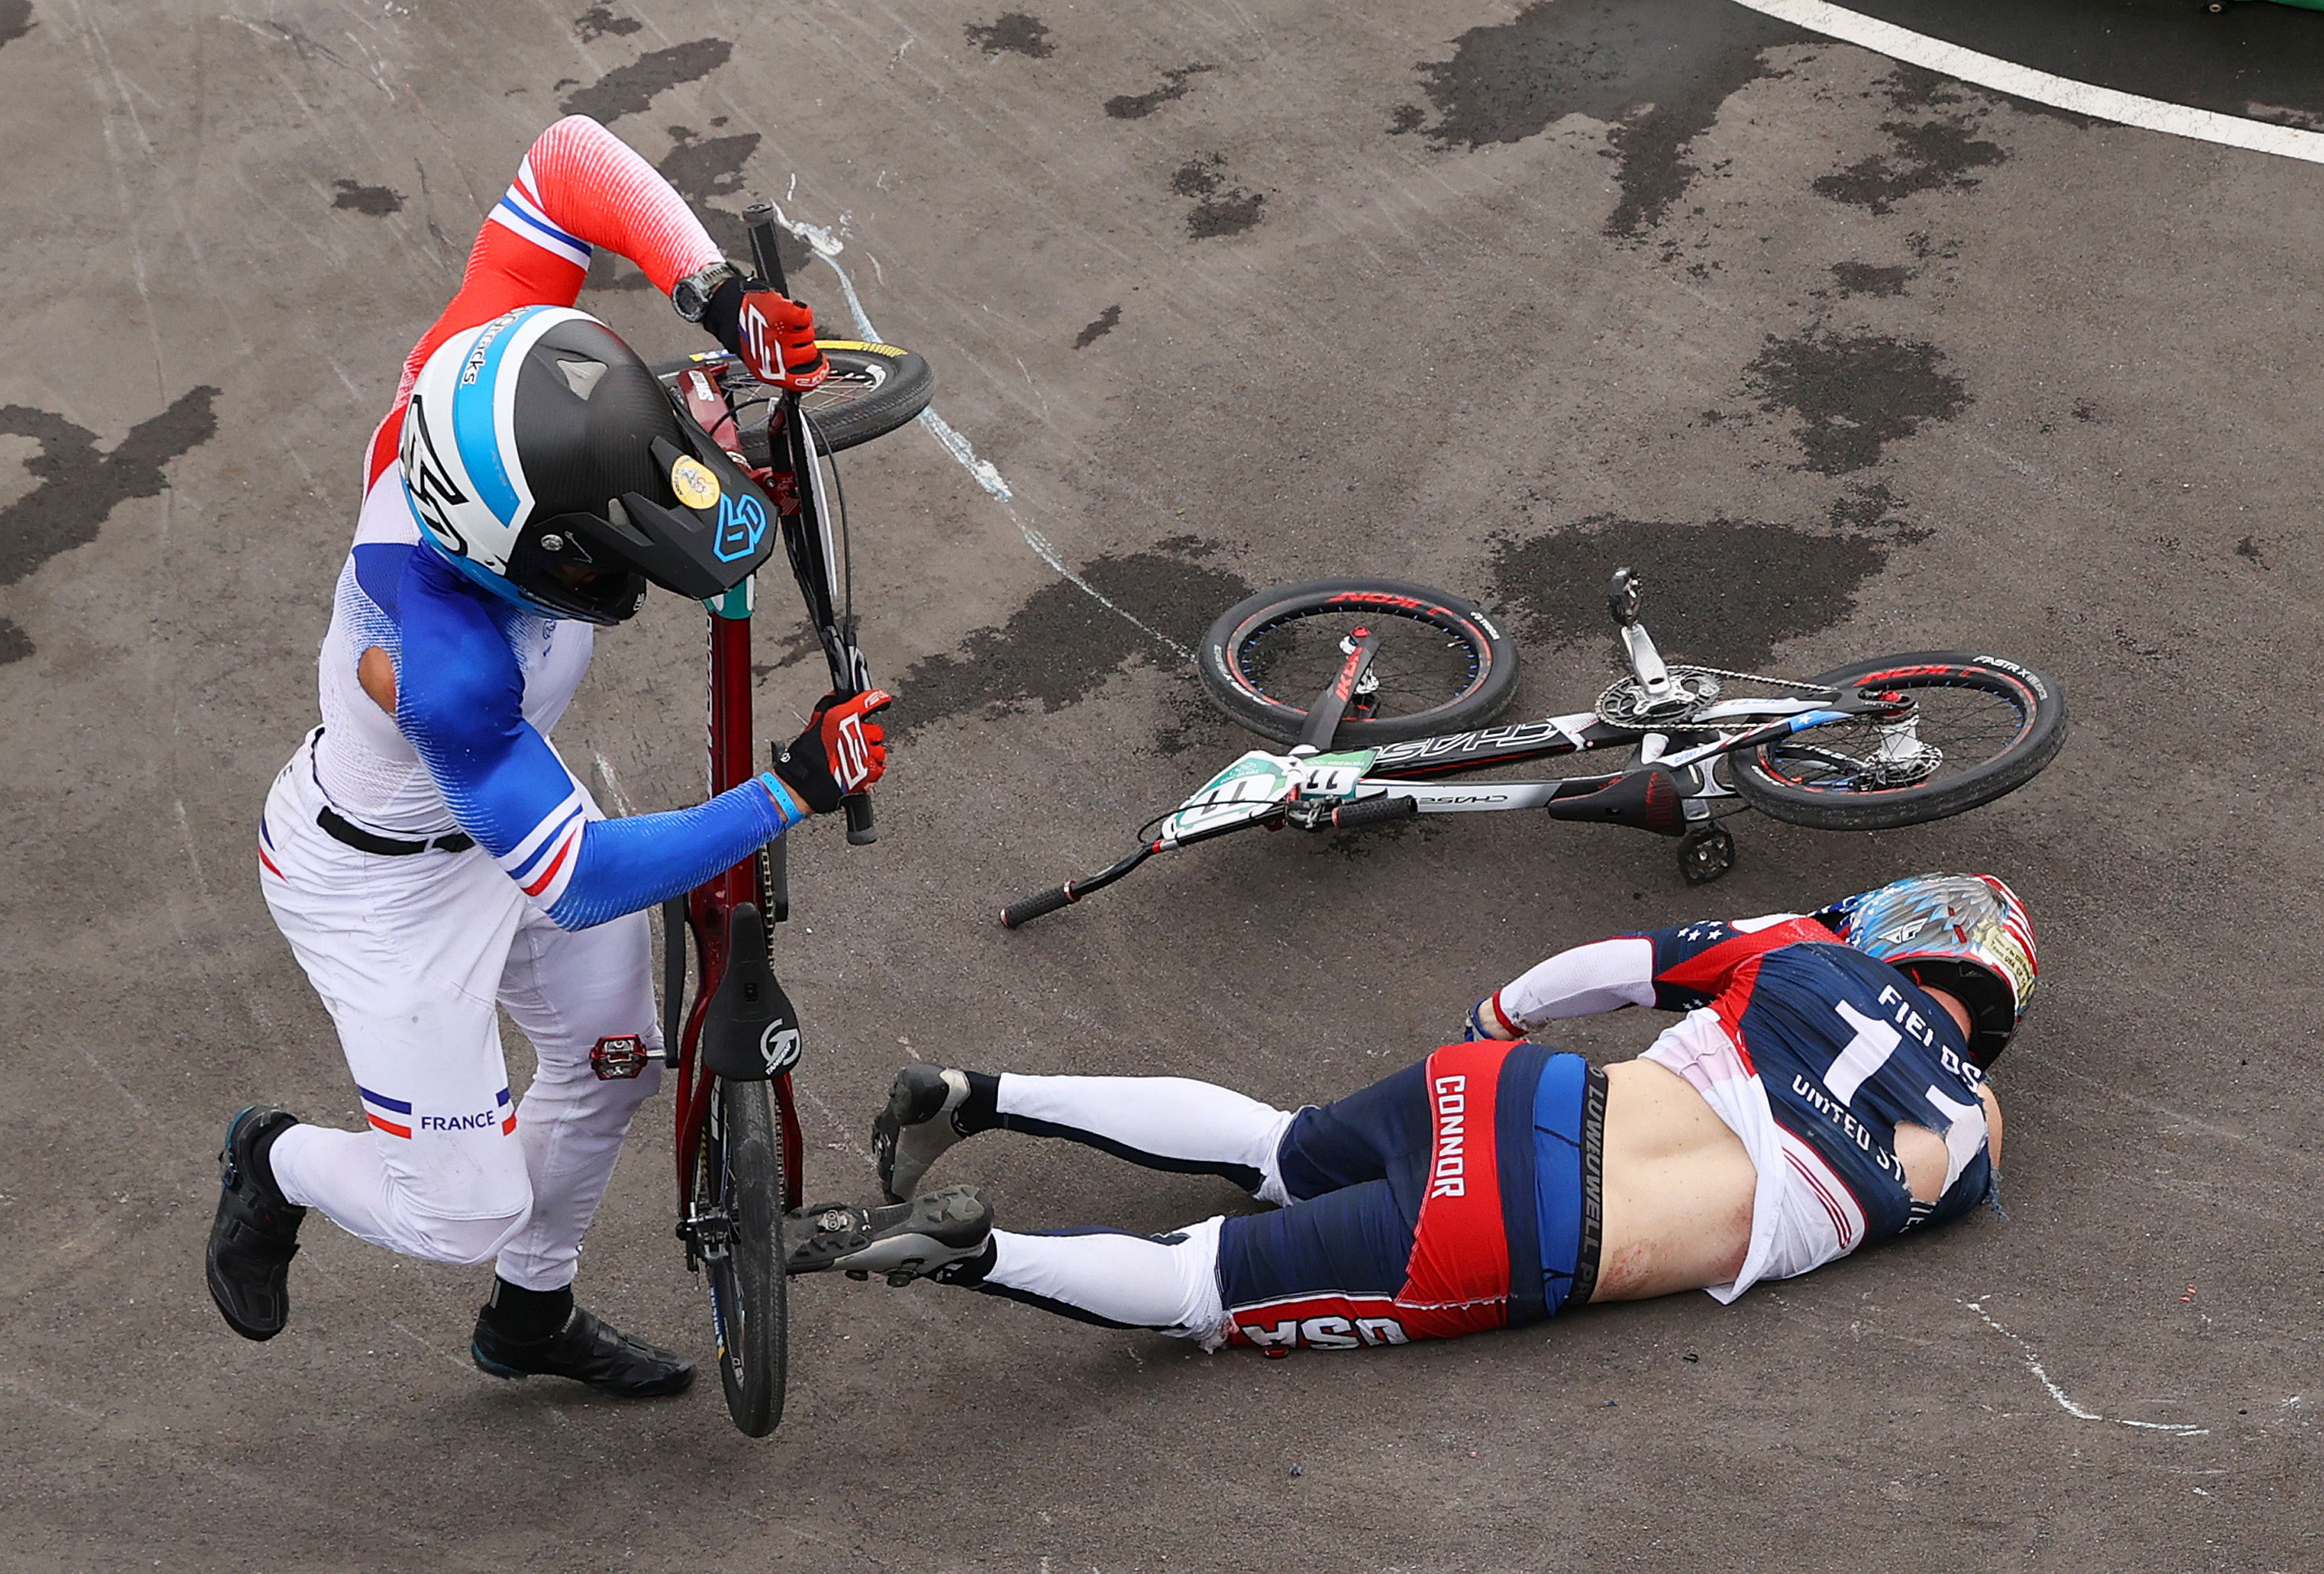 France's Romain Mahieu and the United States' Connor Fields crash during a BMX semifinal heat on July 30.